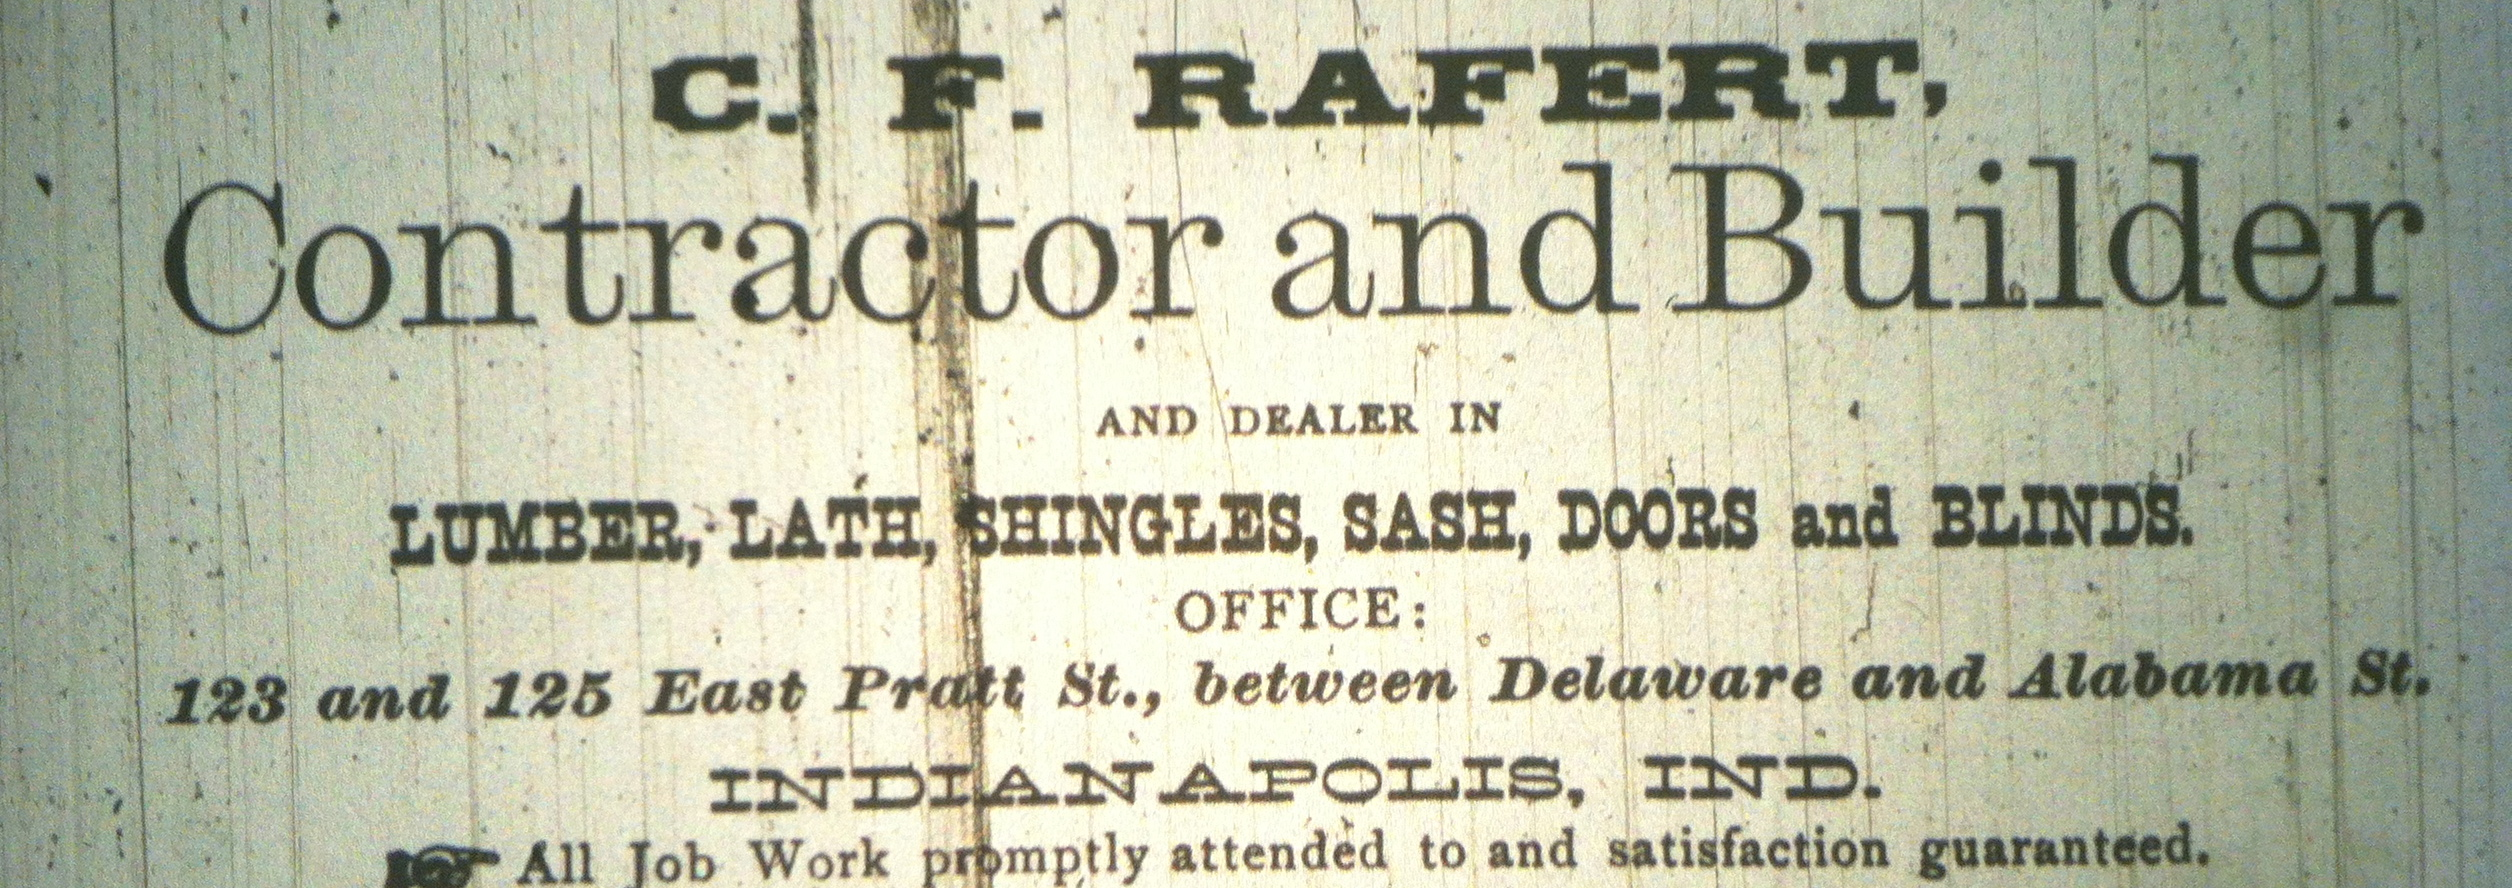 Sunday Adverts: C. F. Rafert, Contractor